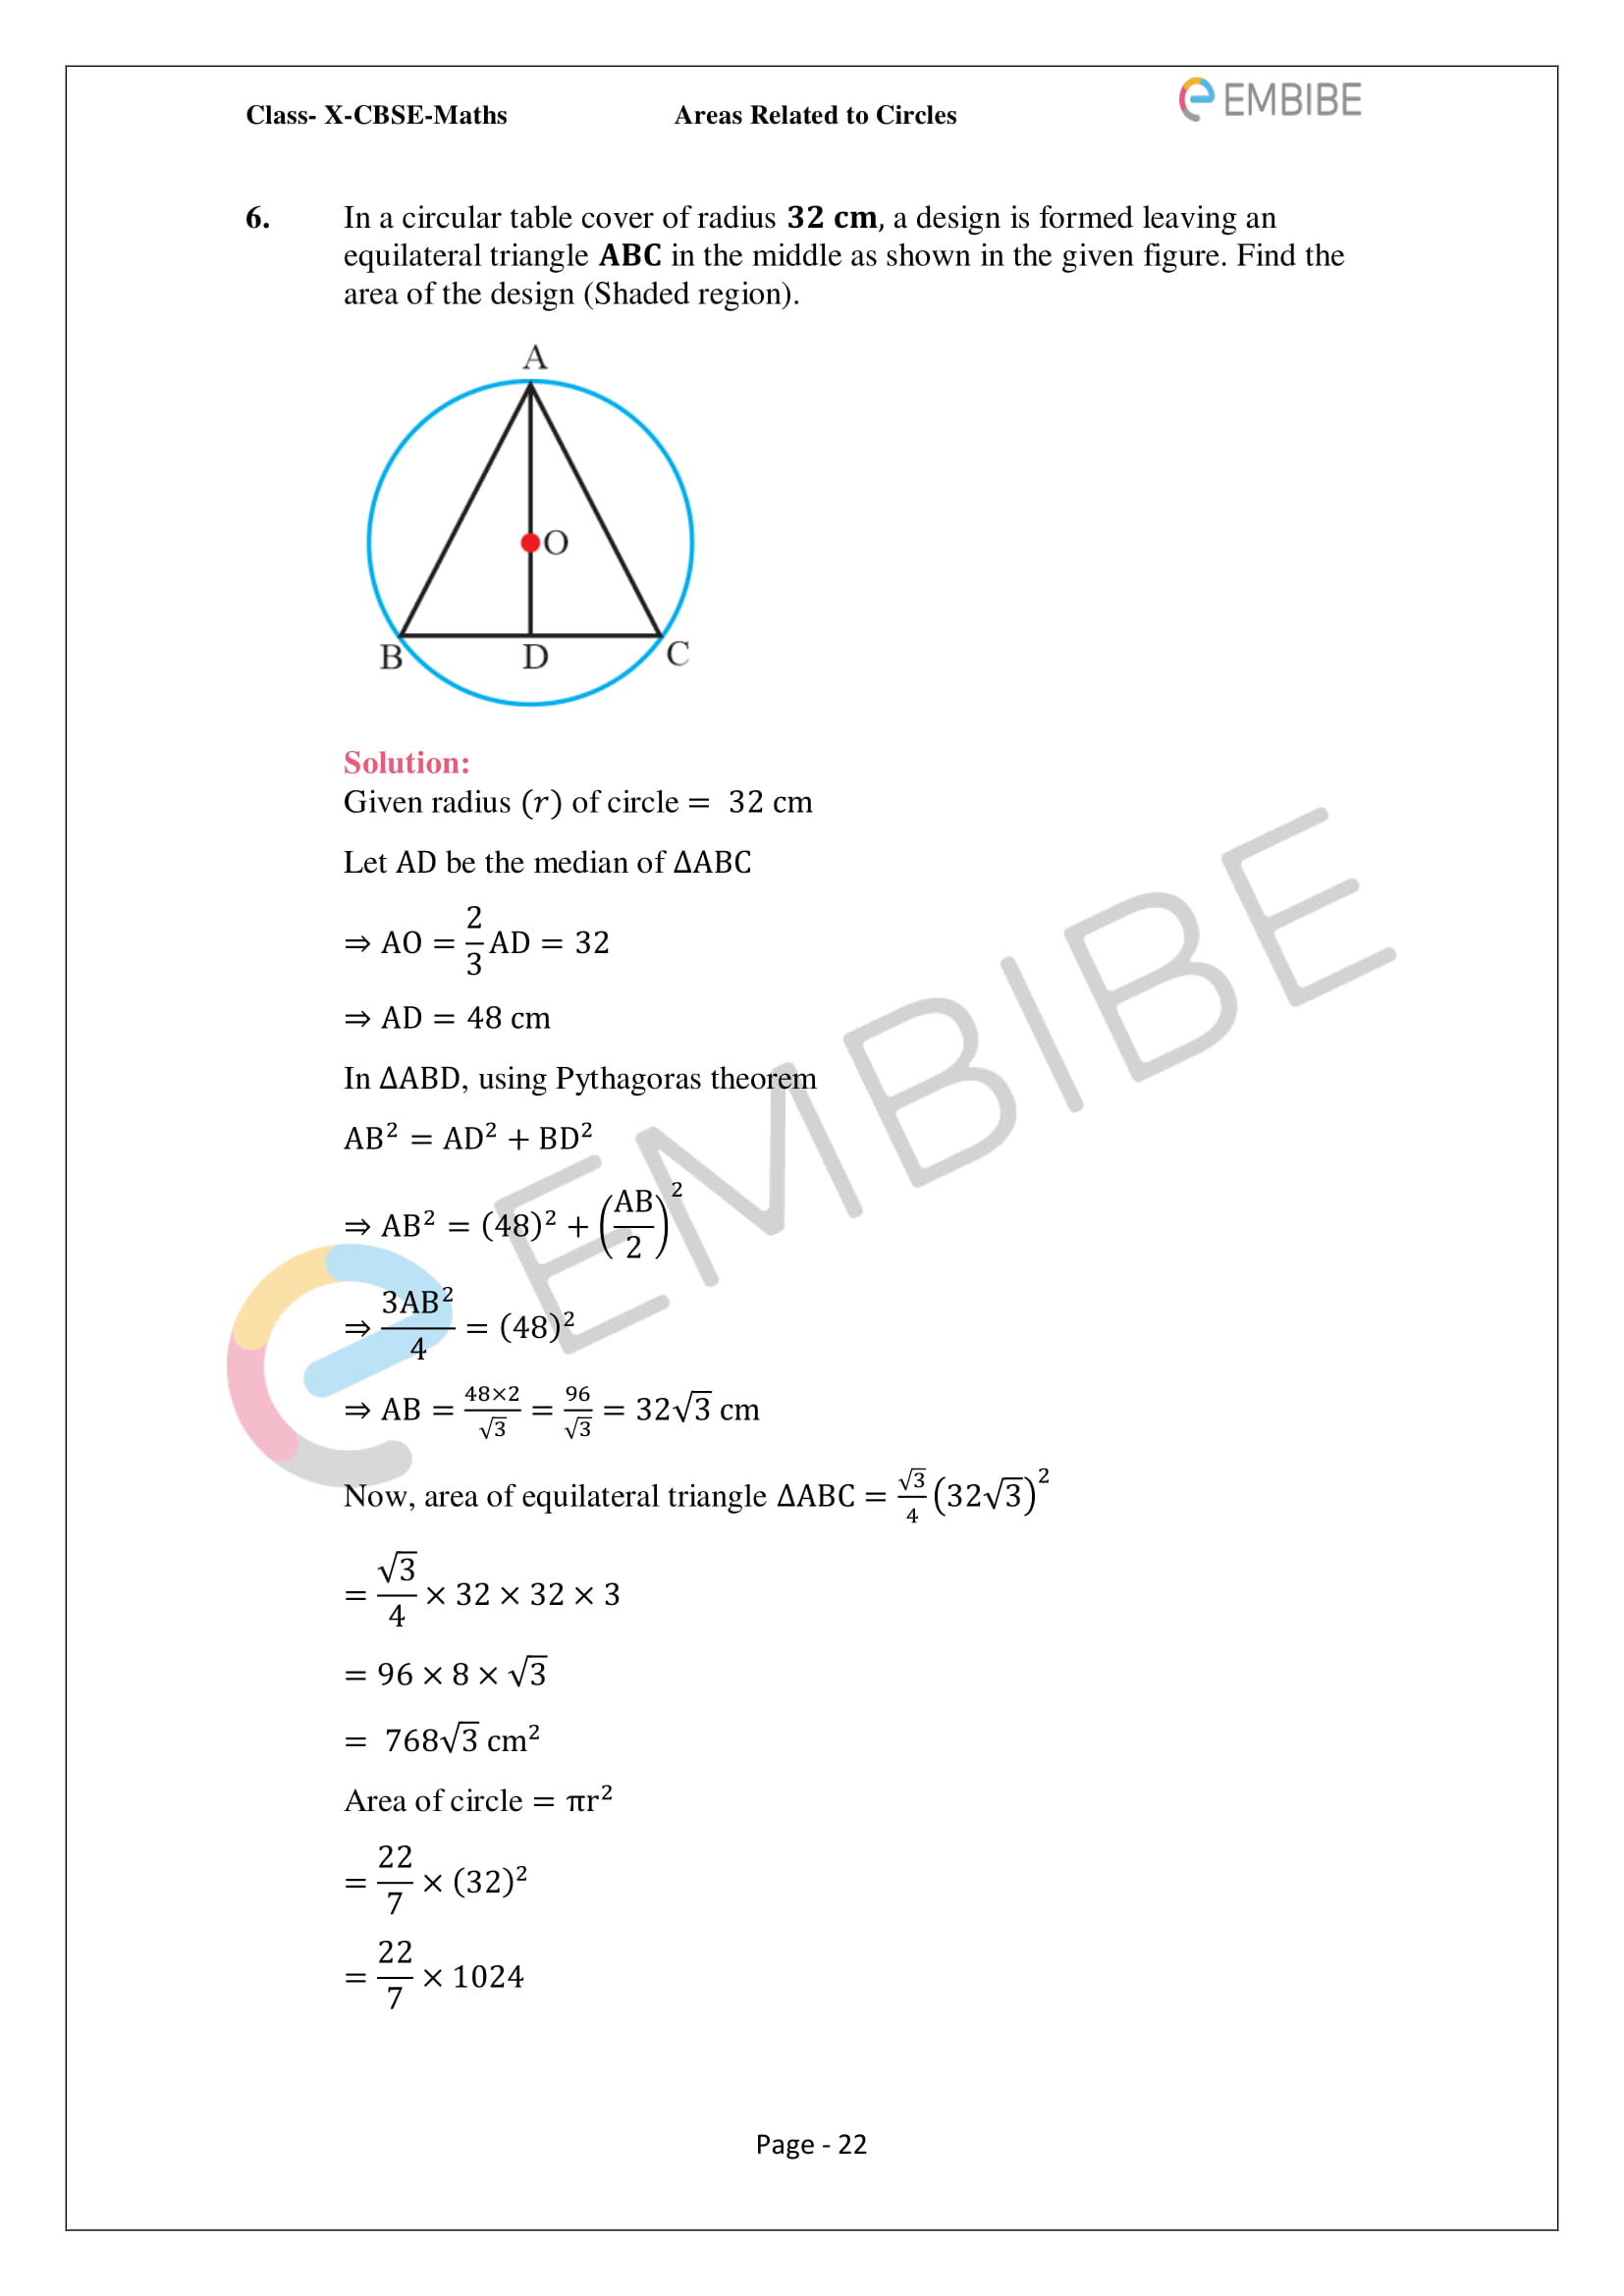 CBSE NCERT Solutions For Class 10 Maths Chapter 12 - Areas Related To Circle - 22